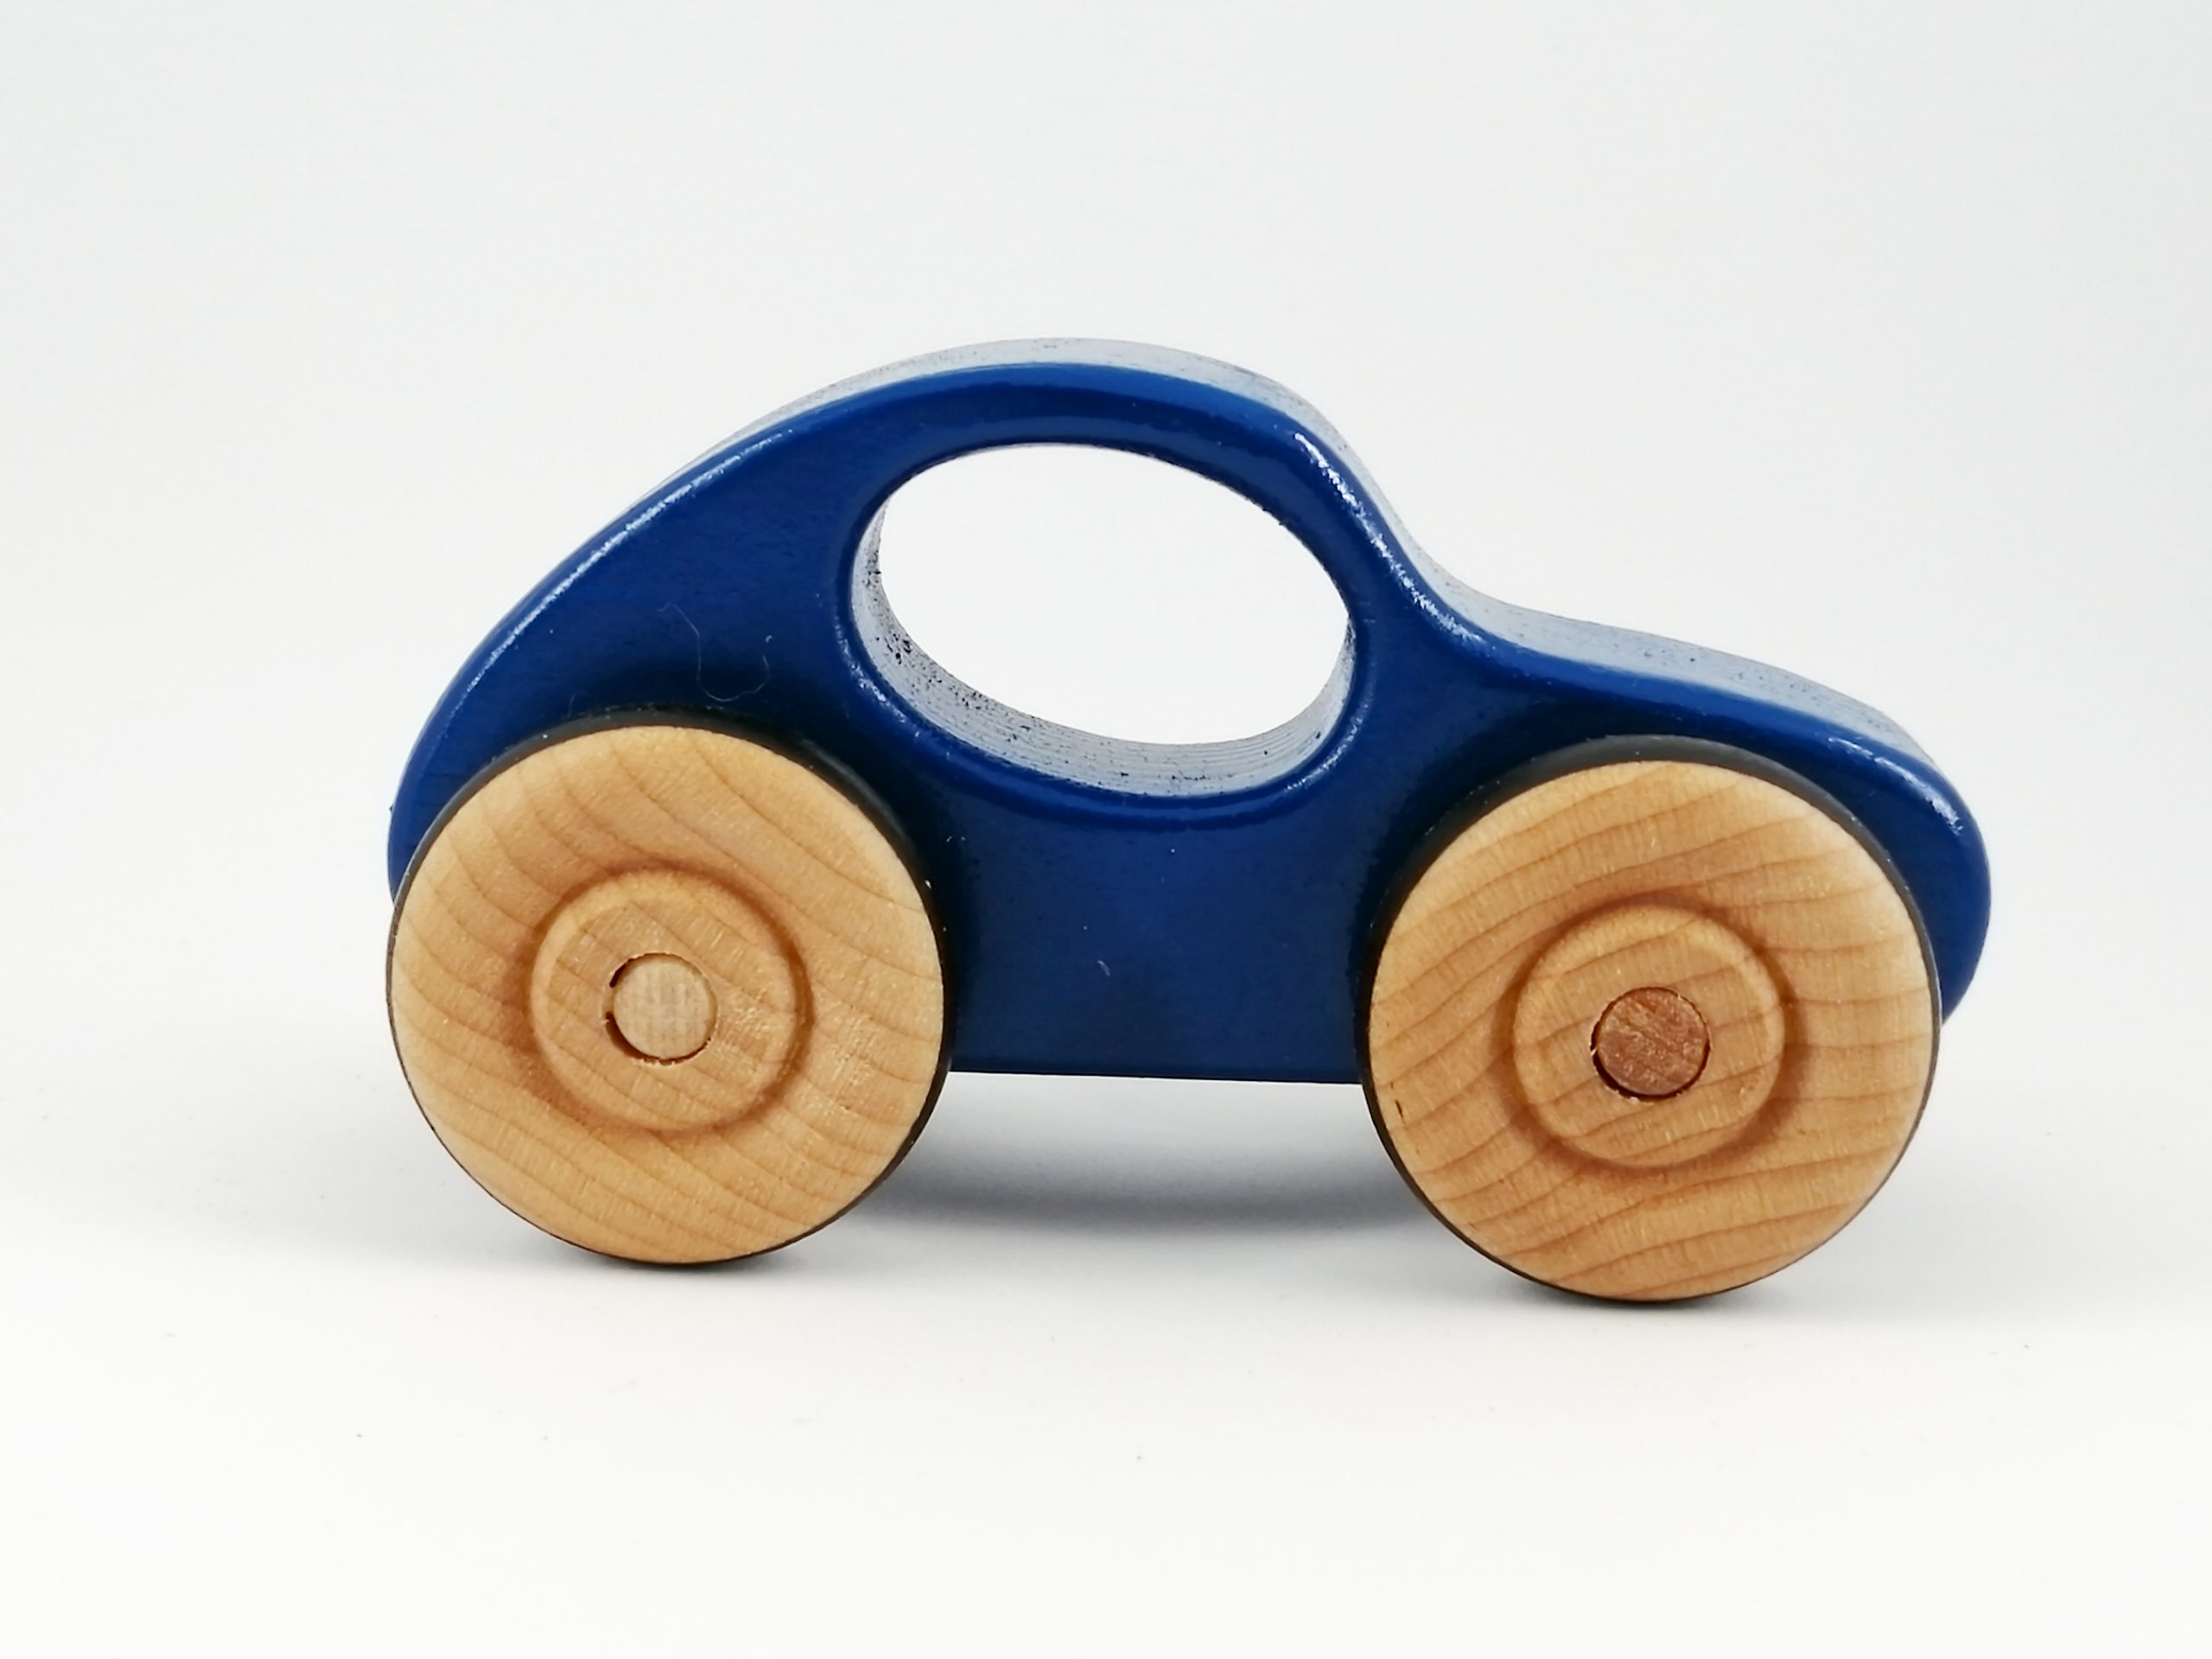 Wooden Toy Car in Bright Blue   Handmade by Tree House Toys